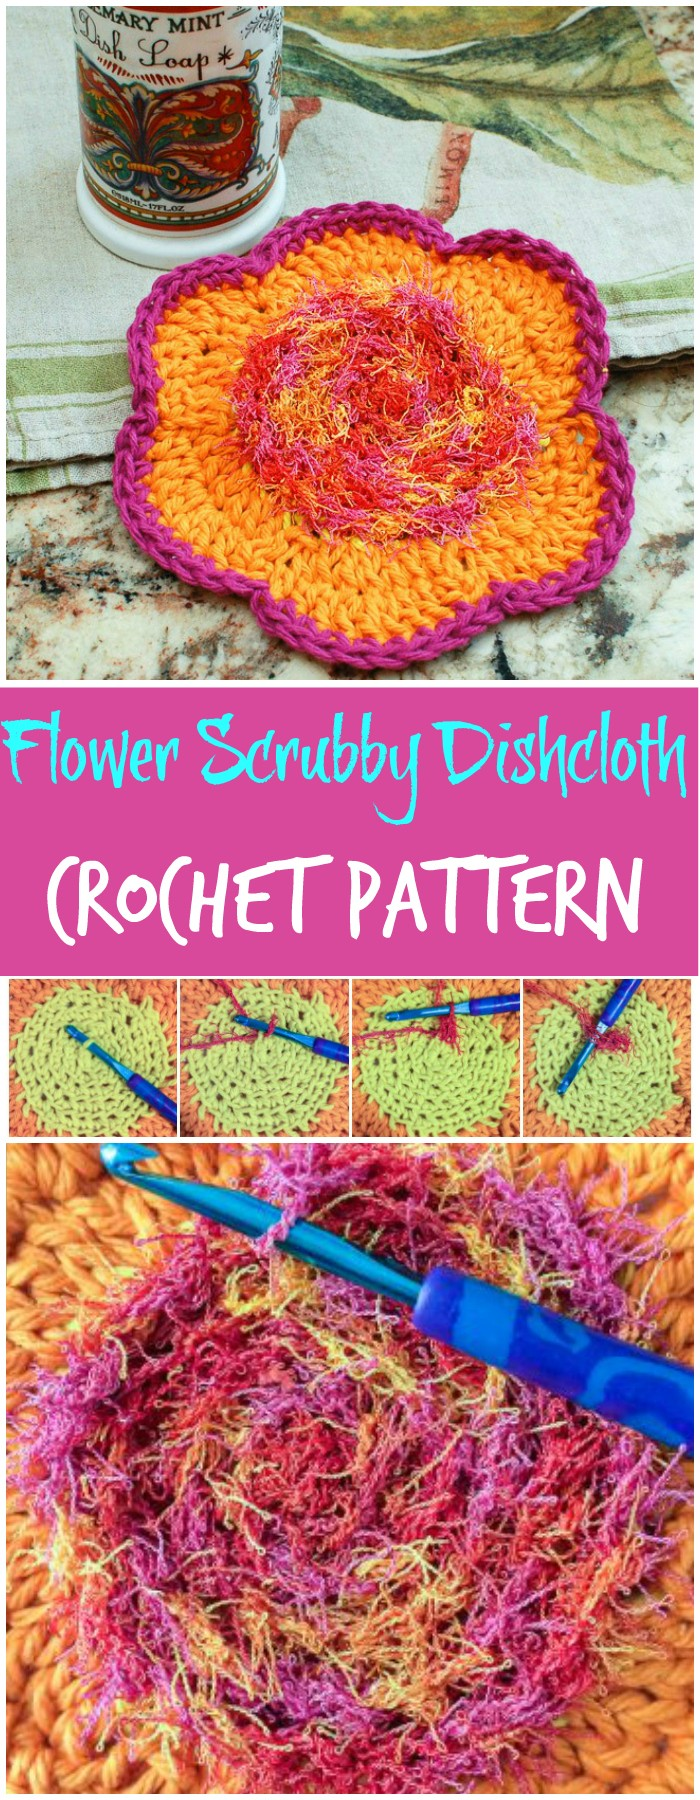 Flower Scrubby Dishcloth Crochet Pattern